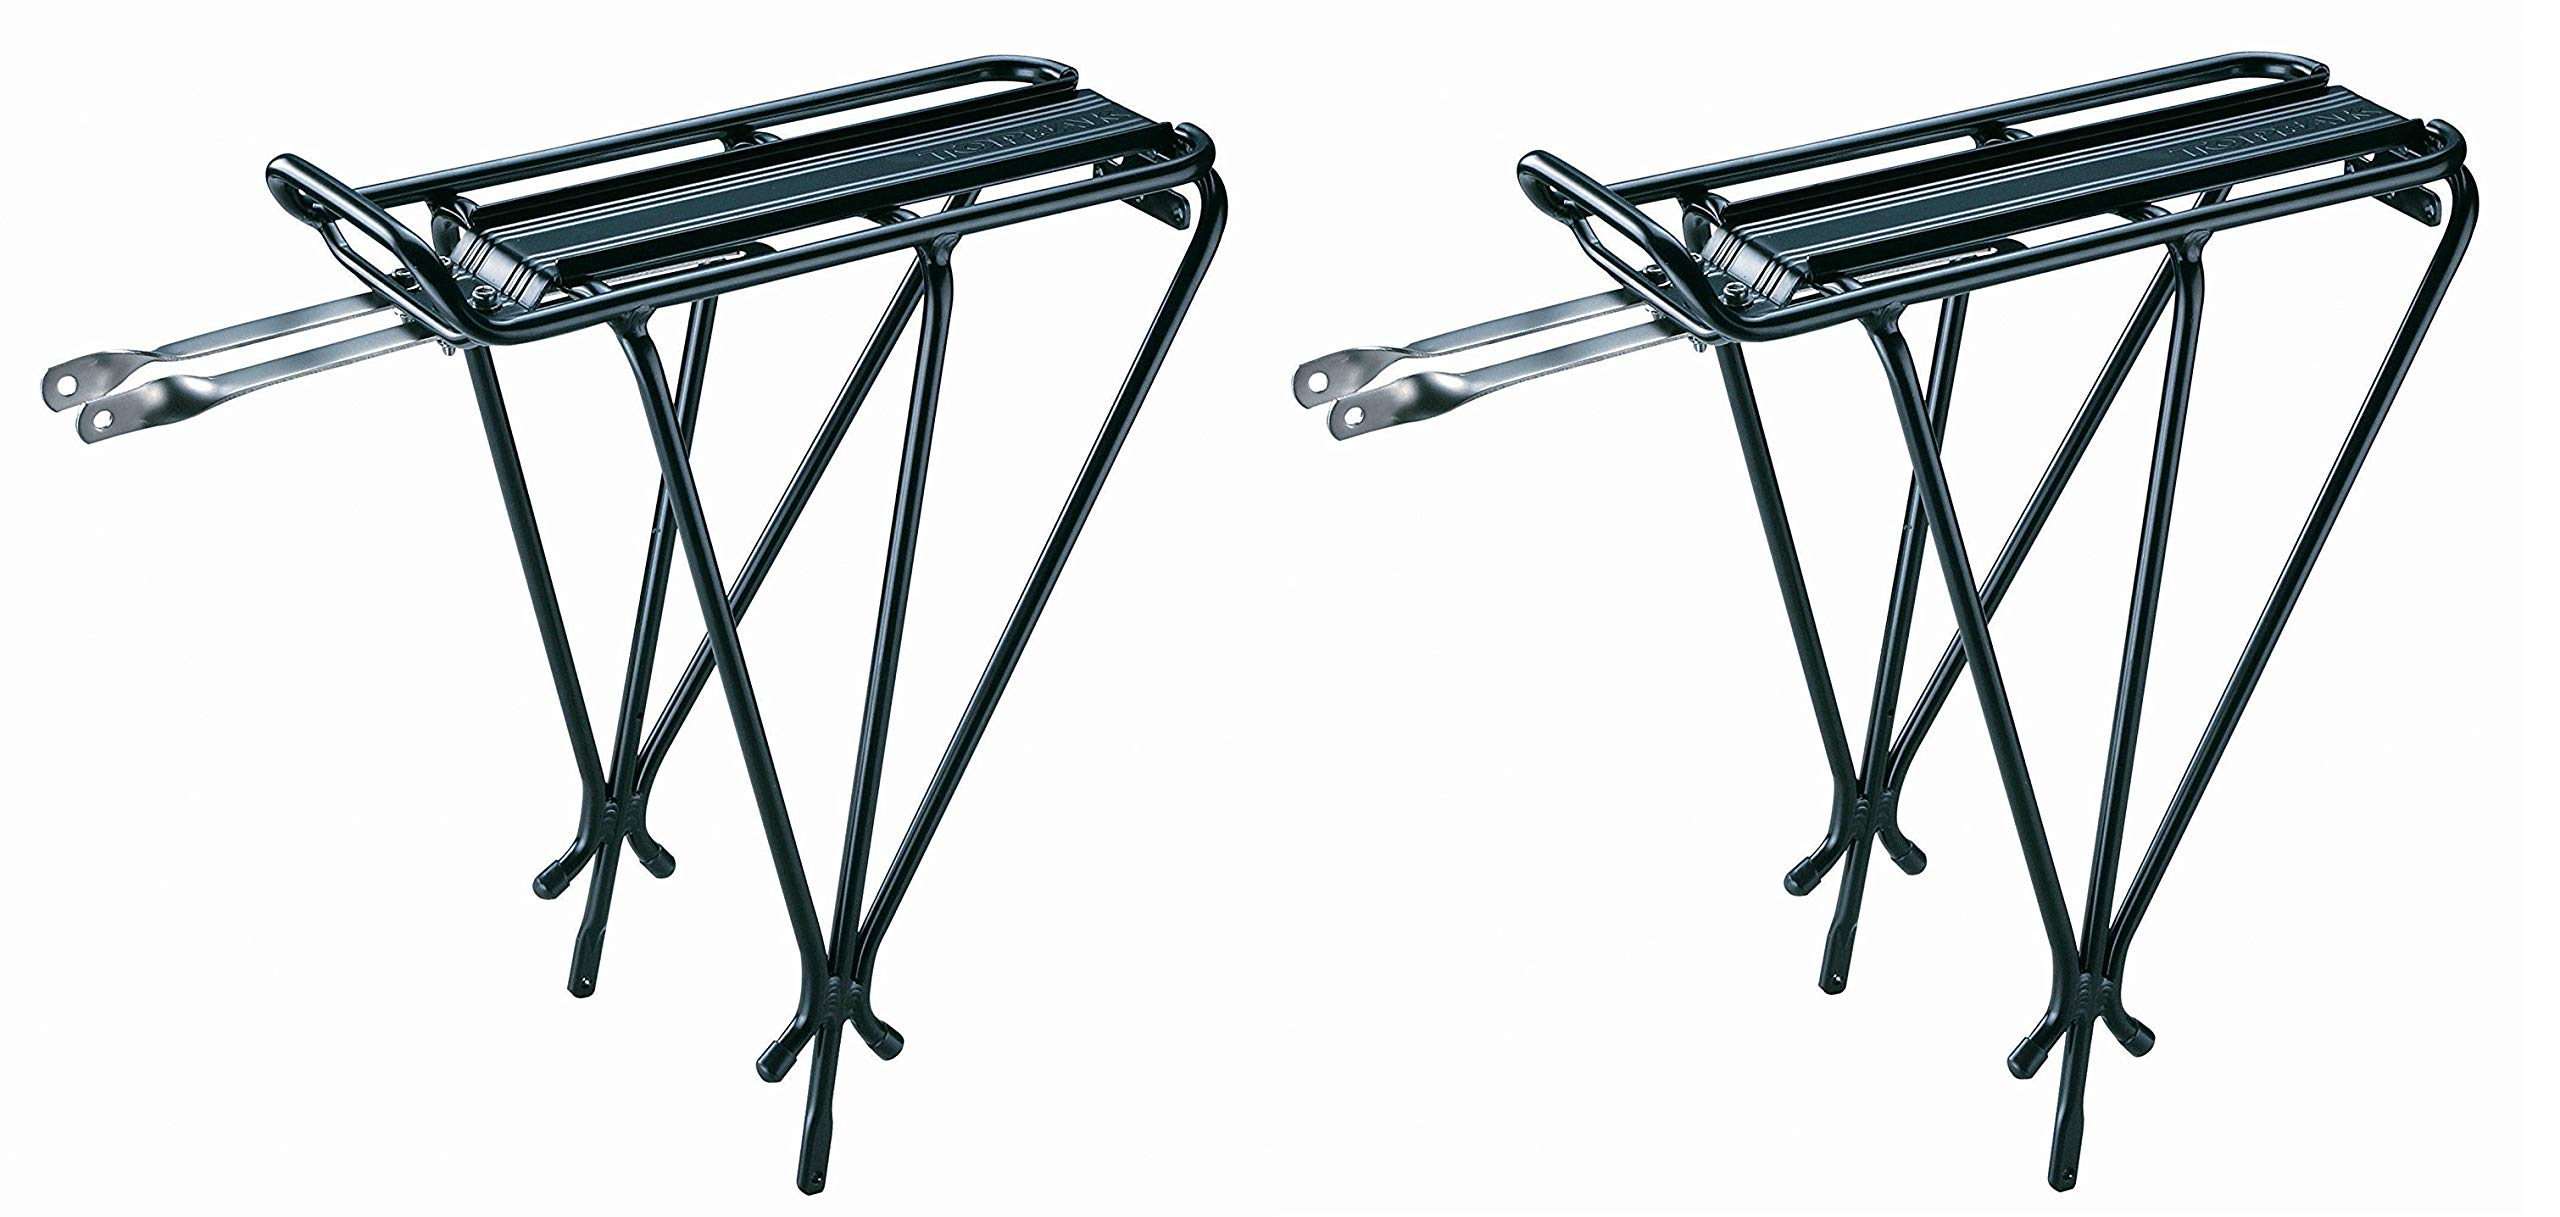 Topeak Explorer Rack Without Spring, Black (Pack of 2)